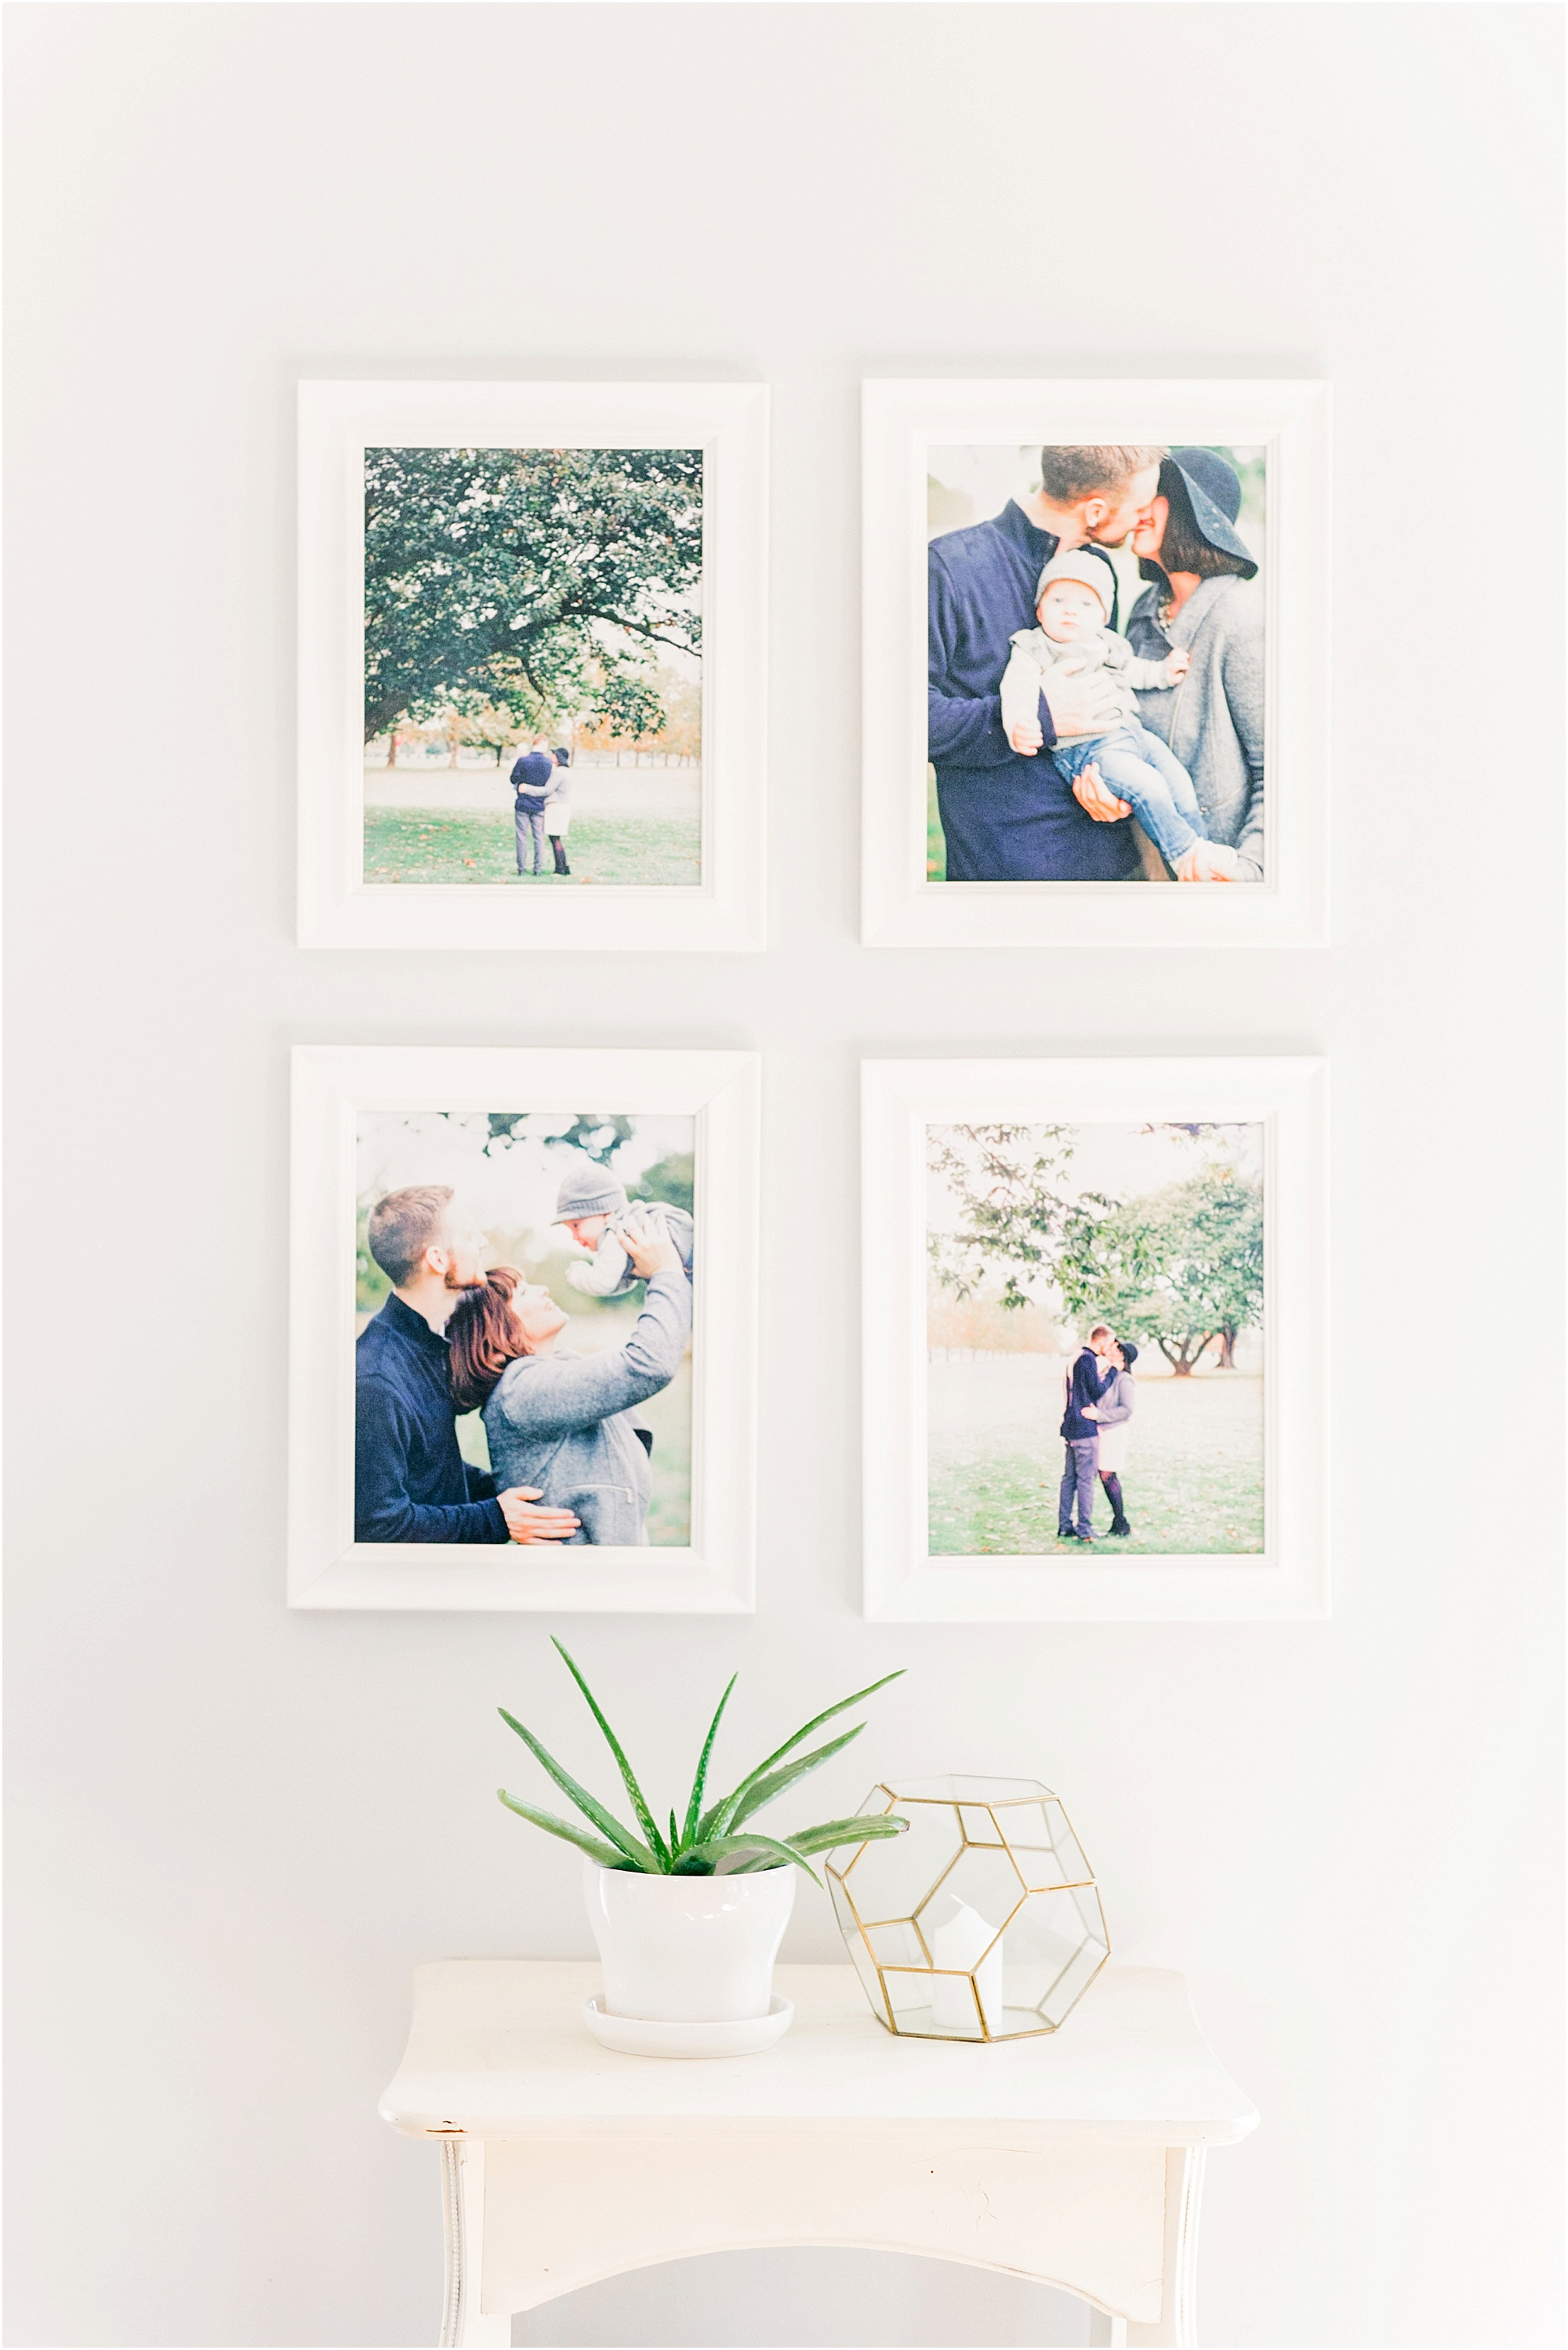 A simple gallery wall that will work in any home - The Jordan Brittley Blog (www.jordanbrittleyblog.com)